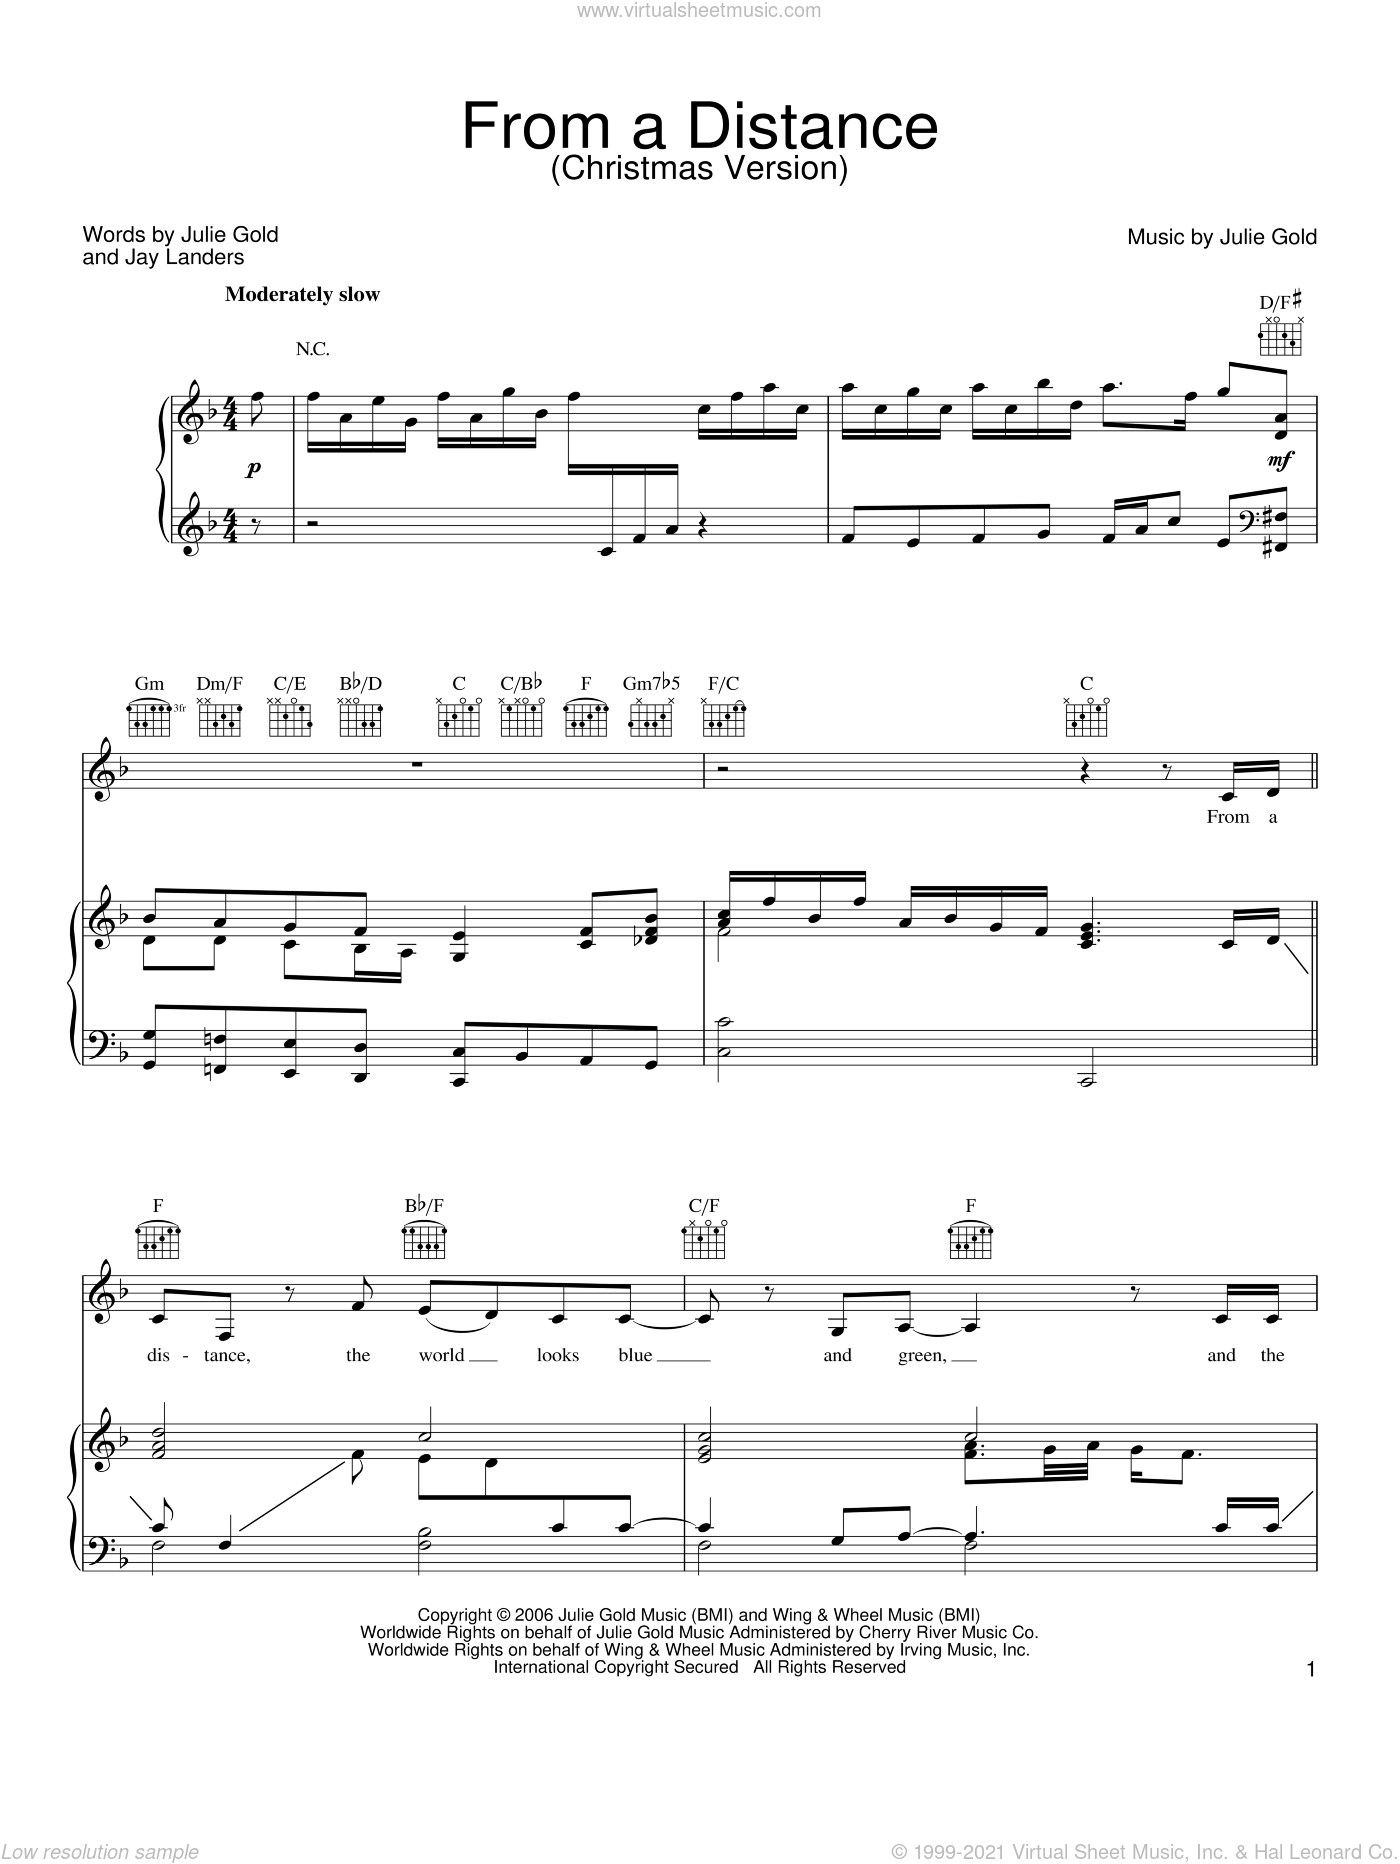 From A Distance (Christmas Version) sheet music for voice, piano or guitar by Jay Landers